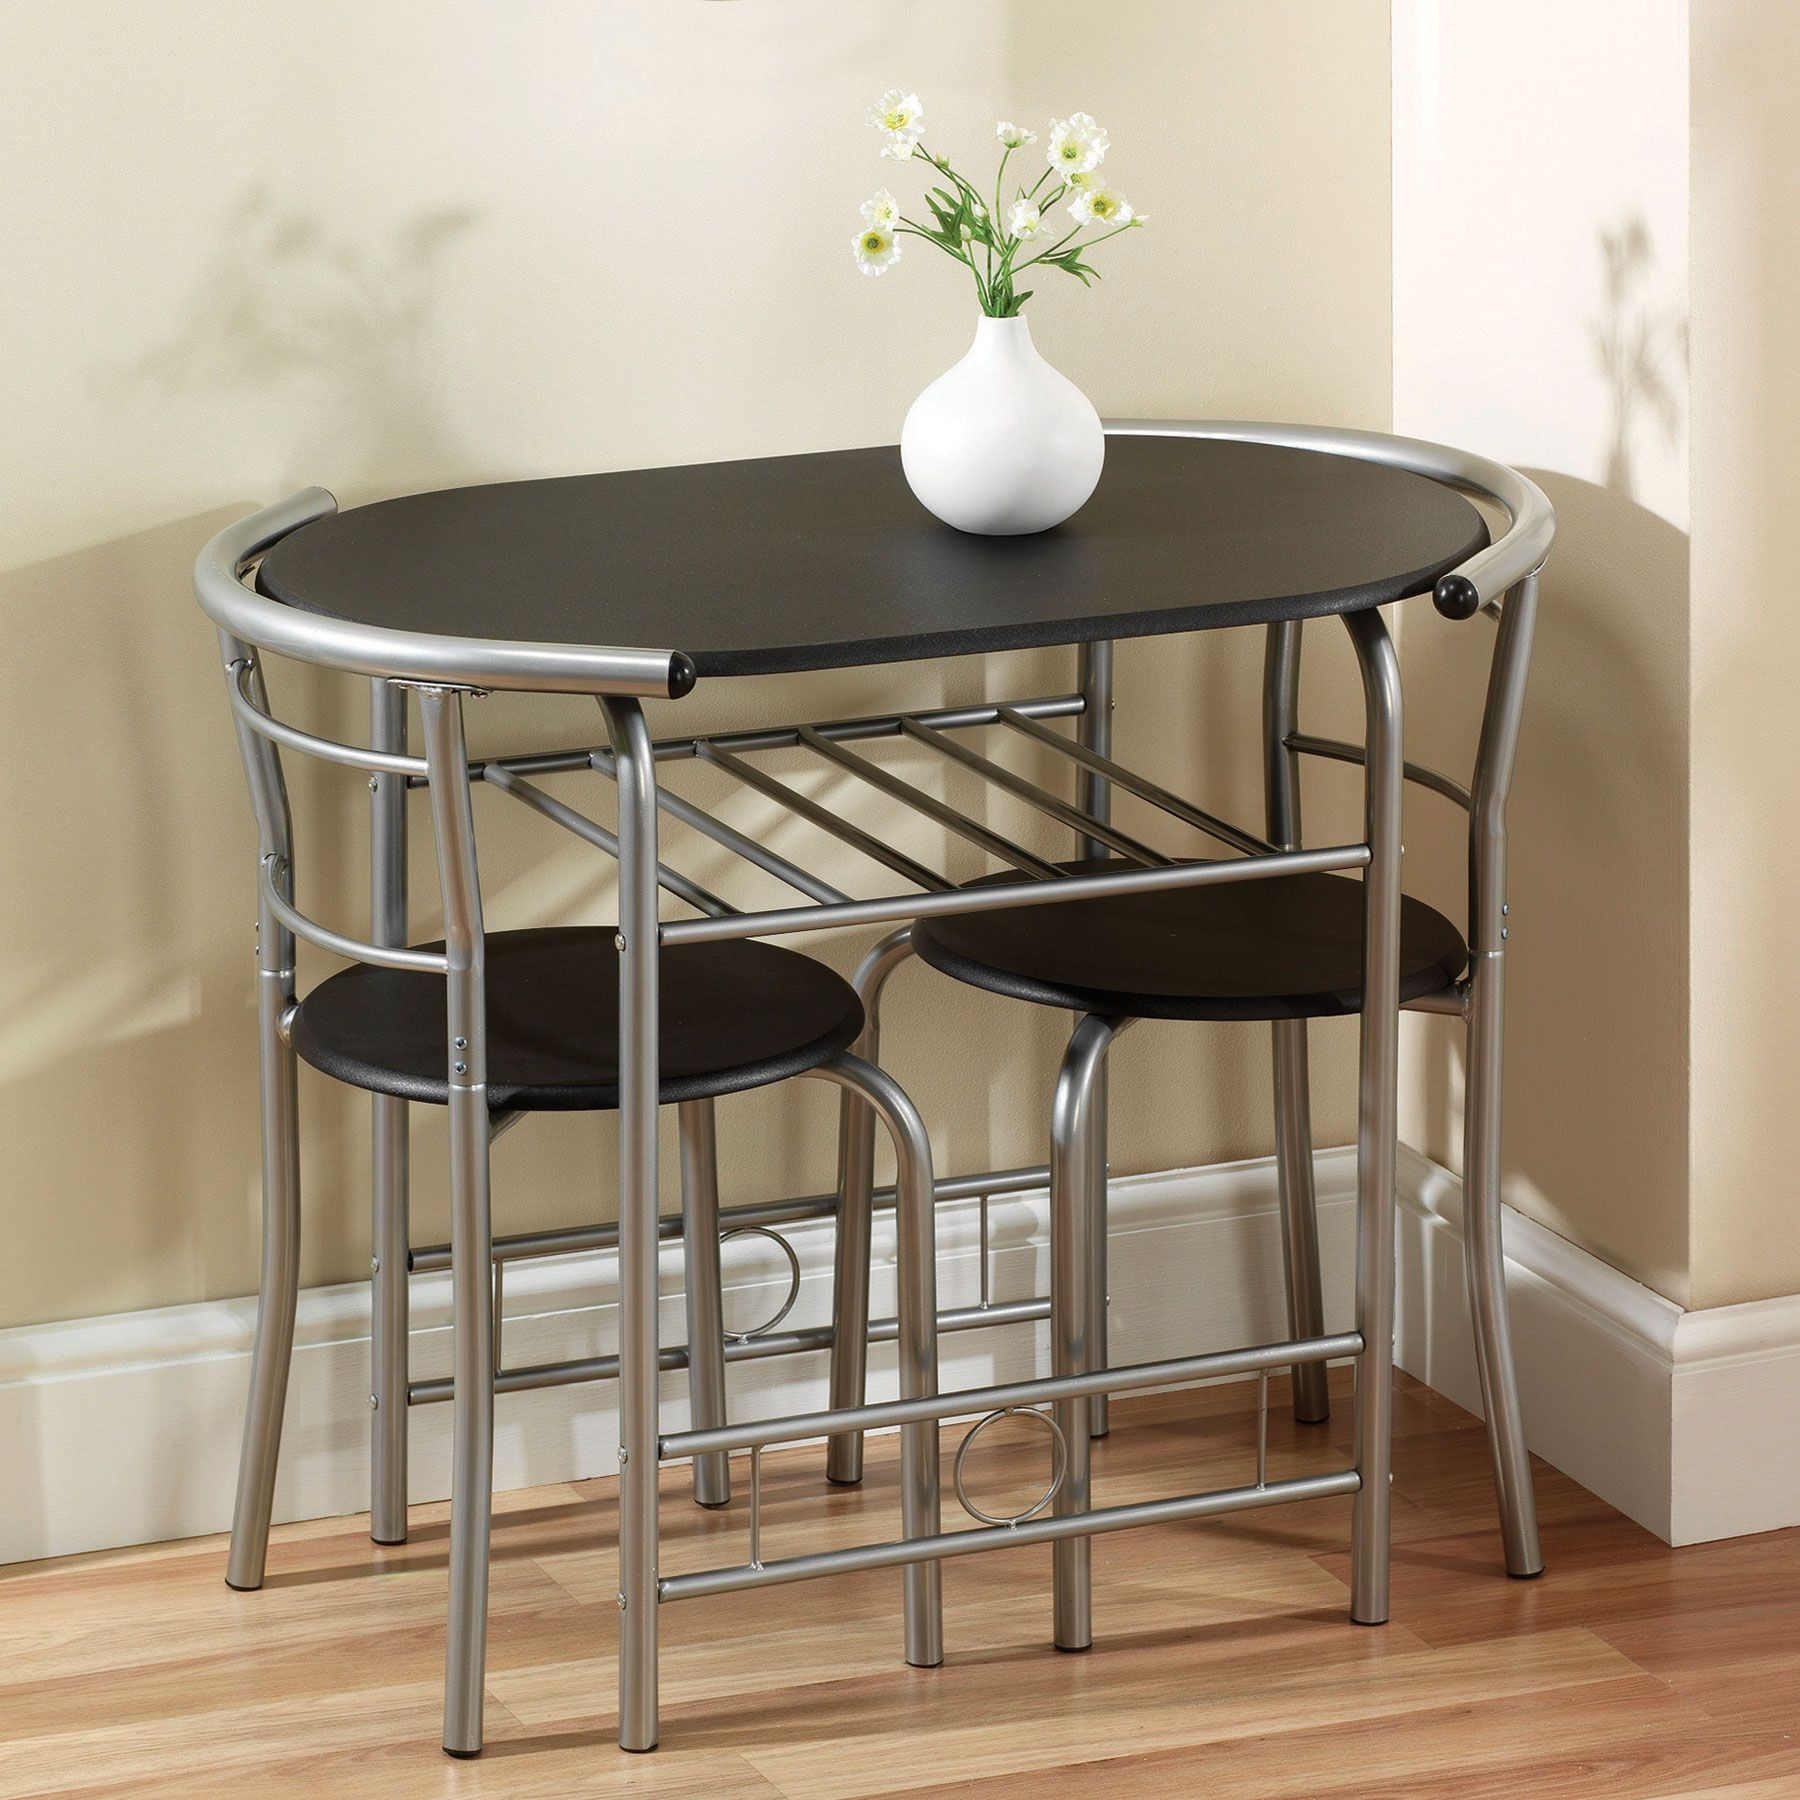 Great Looking Dining Room Set Compact For My Small Dining Room And Yet A Nice Five Piece S Small Dining Table Kitchen Table Settings Small Round Kitchen Table